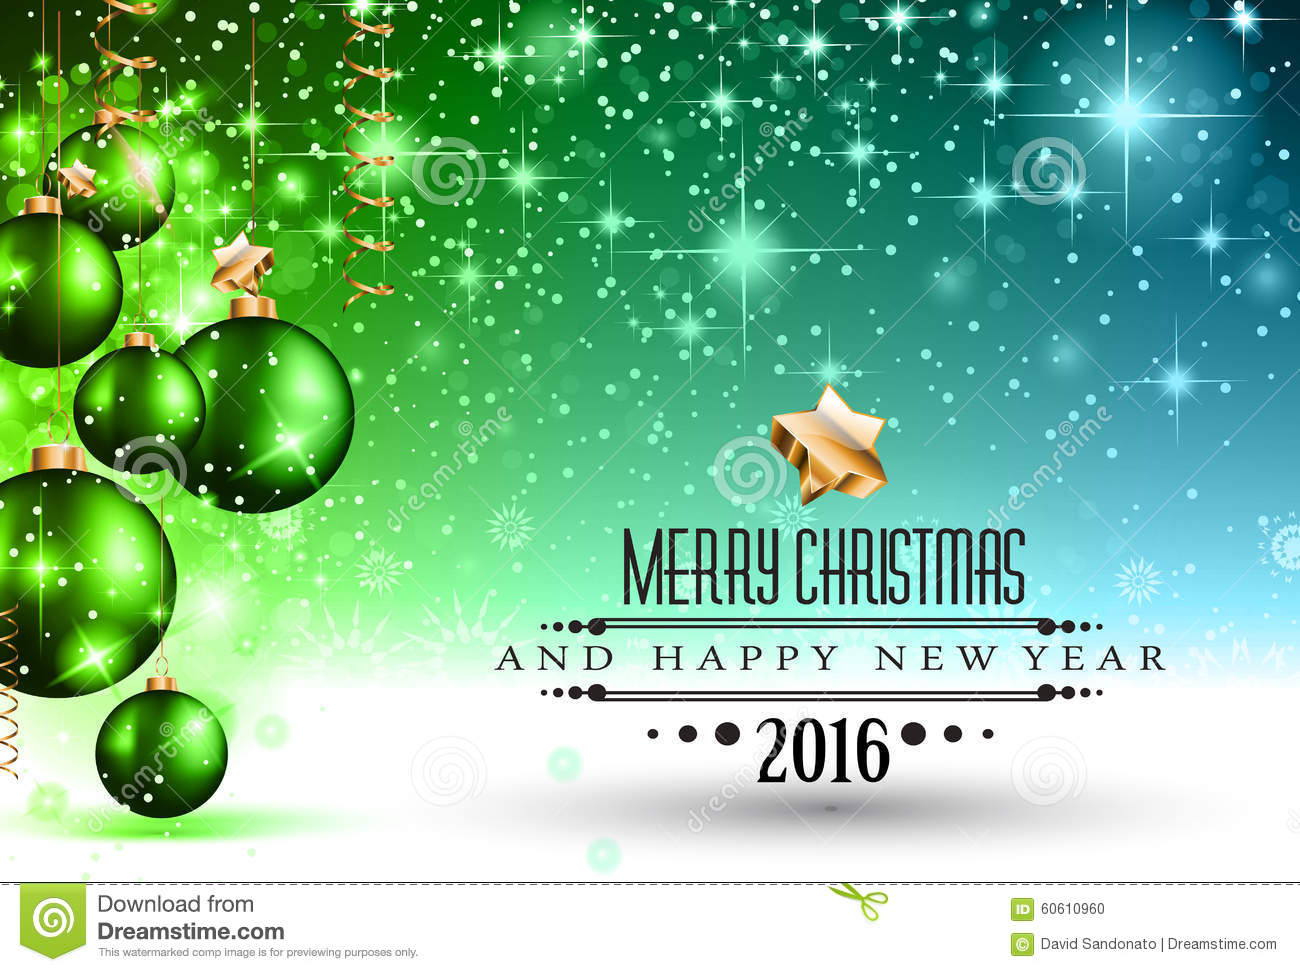 2016 christmas and happy new year party flyer vector illustration cartoondealercom 60611002